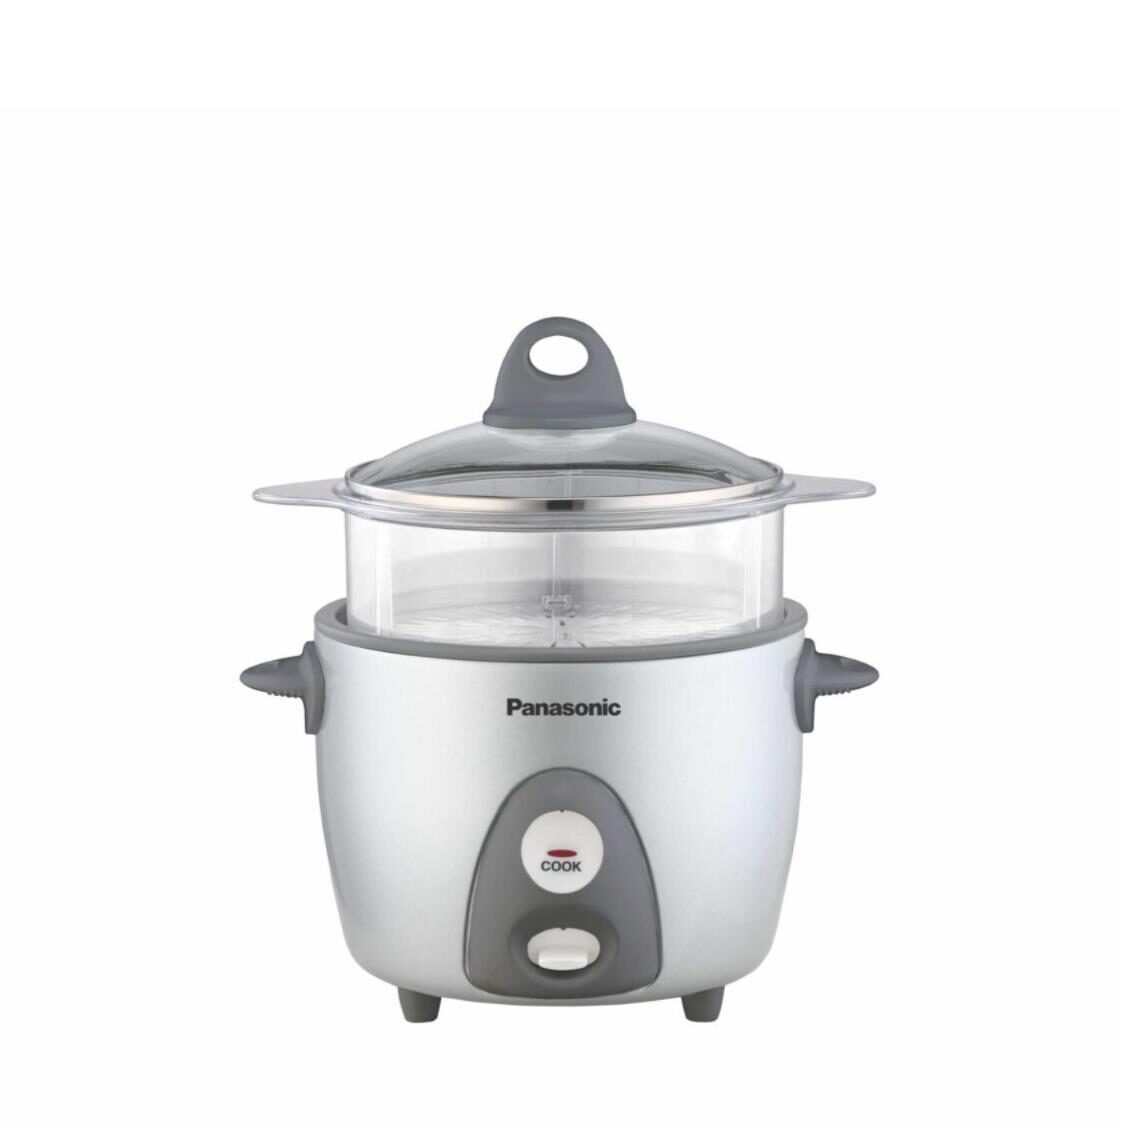 Panasonic 06L Rice Cooker With Steam Basket SR-G06 Silver